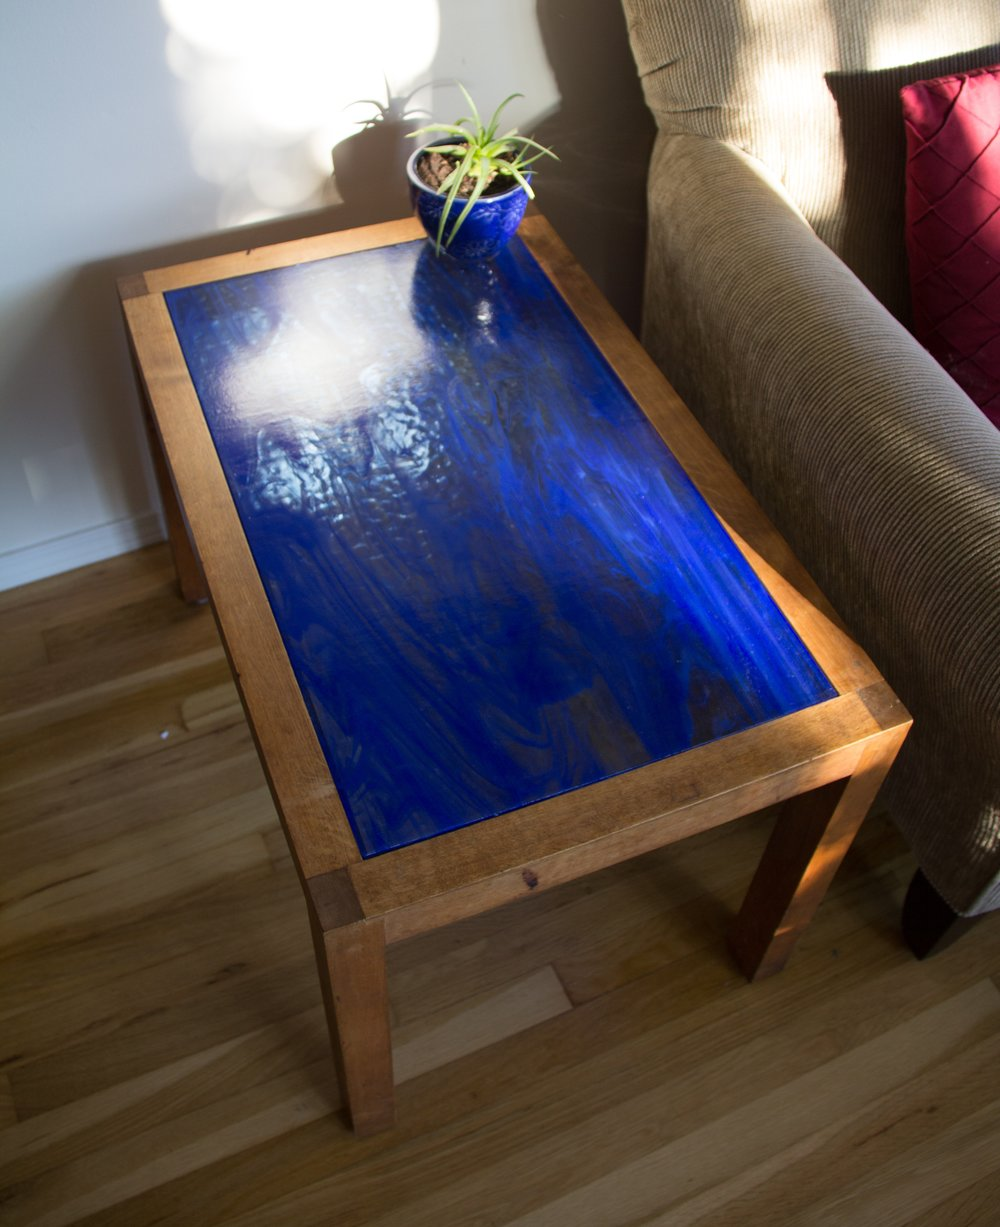 Recycled End Table (2013) - Art Glass - Found End Table